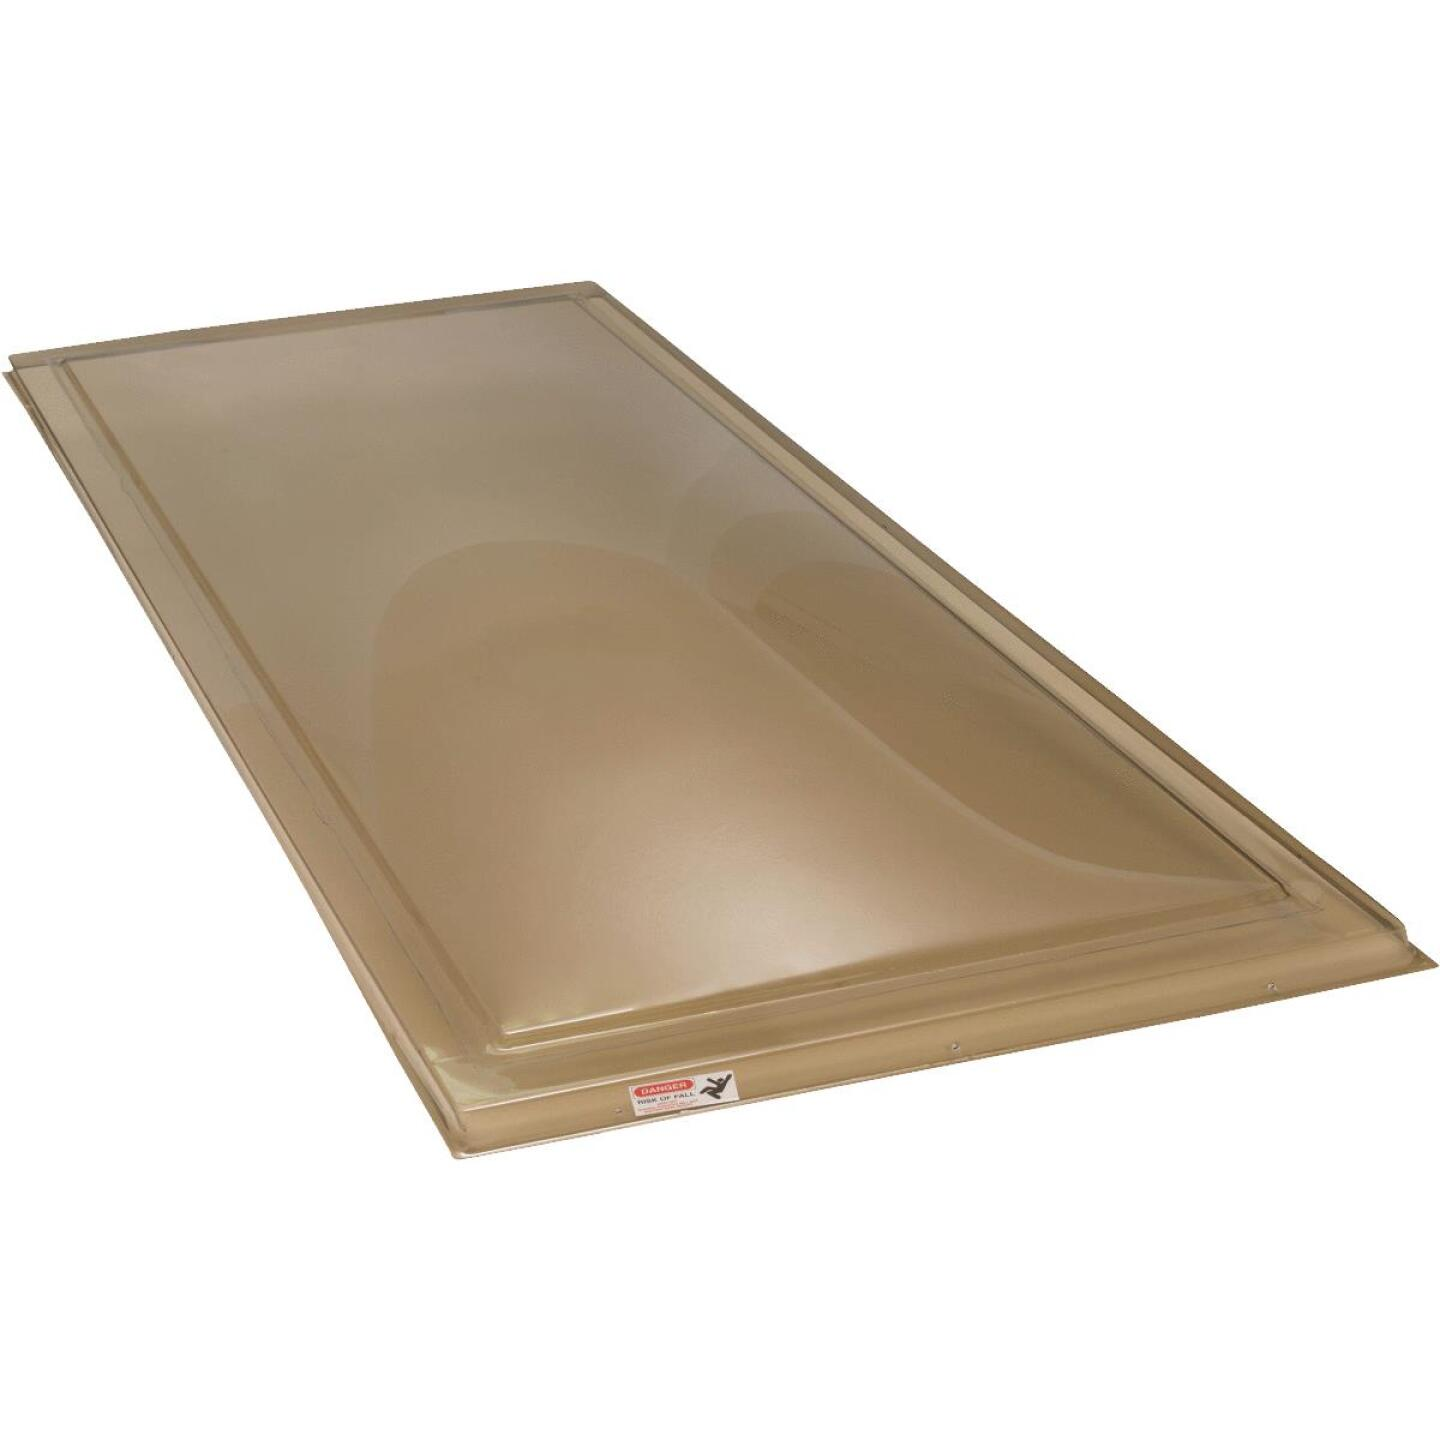 Kennedy Skylights 24 In. x 48 In. Bronze Dome Curb Mount Skylight Image 1